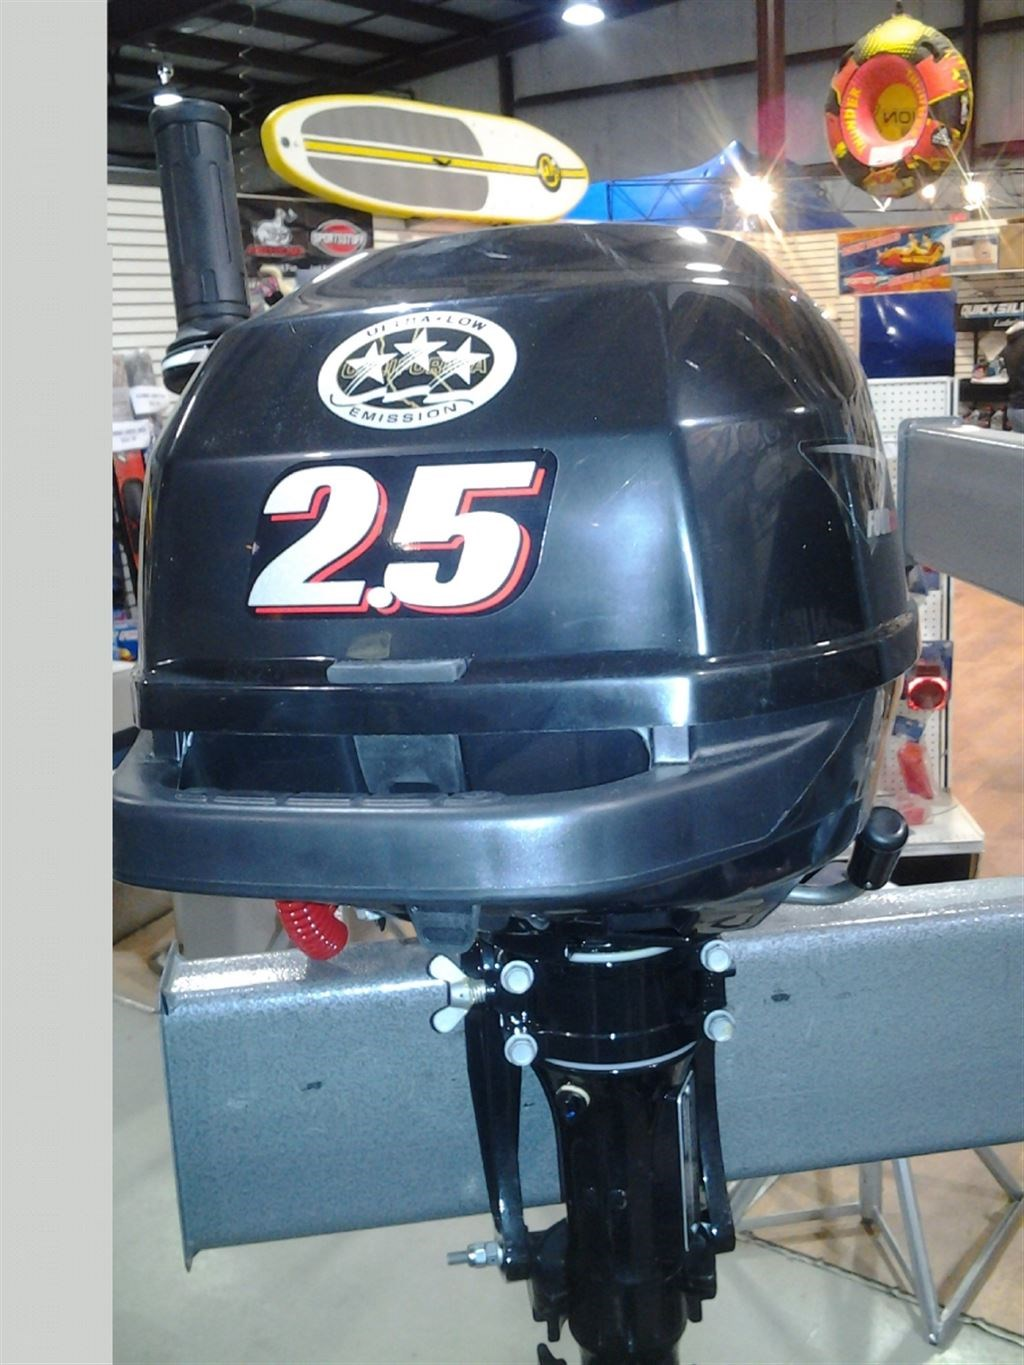 Suzuki Df2 5 2016 New Outboard For Sale In Ayr Ontario